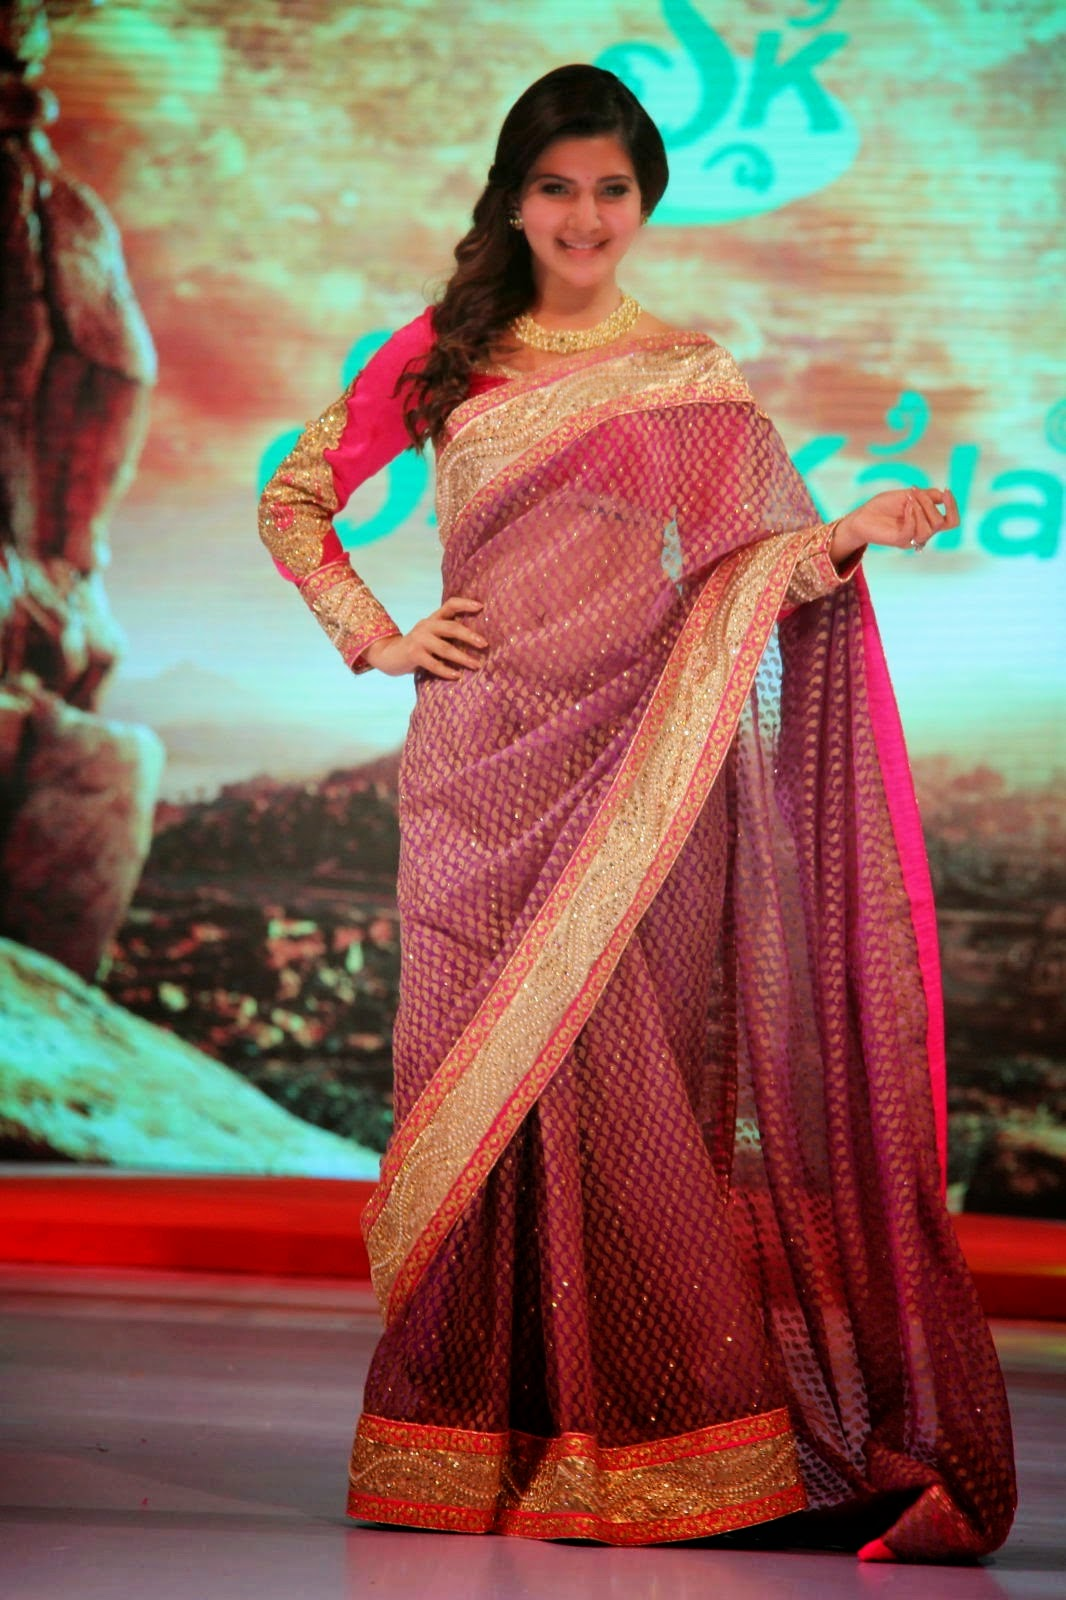 heroine samantha hot in saree photos images wallpapers gallery free